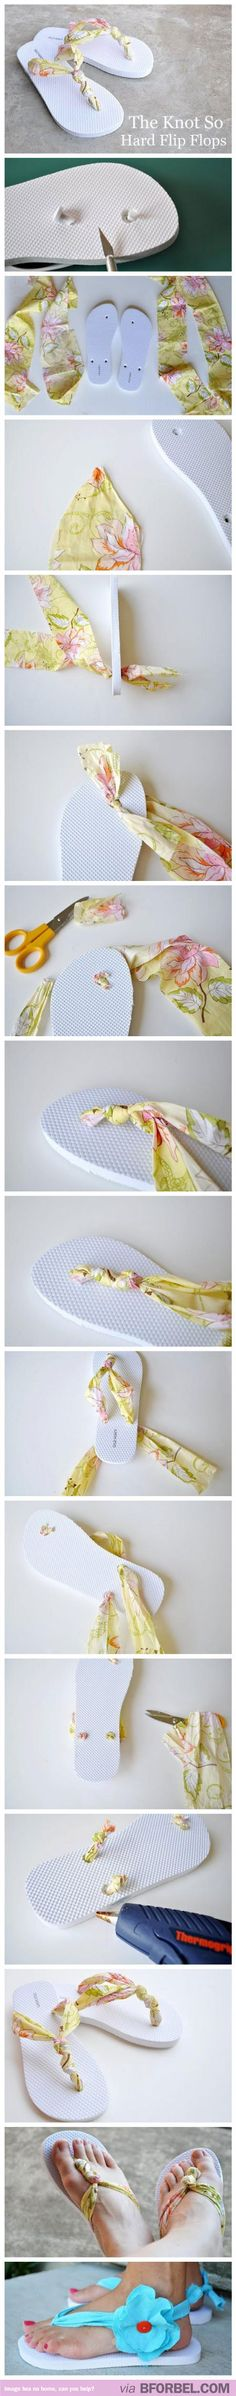 DIY Knot So Hard Flip Flops diy diy ideas diy crafts do it yourself craft clothes craft shoes diy clothes diy shoes easy crafts easy diy fashion diy craft fashion summer diy Flip Flops Diy, Cute Crafts, Crafts To Do, Arts And Crafts, Diy Crafts, Diy Projects To Try, Craft Projects, Craft Ideas, Sewing Projects